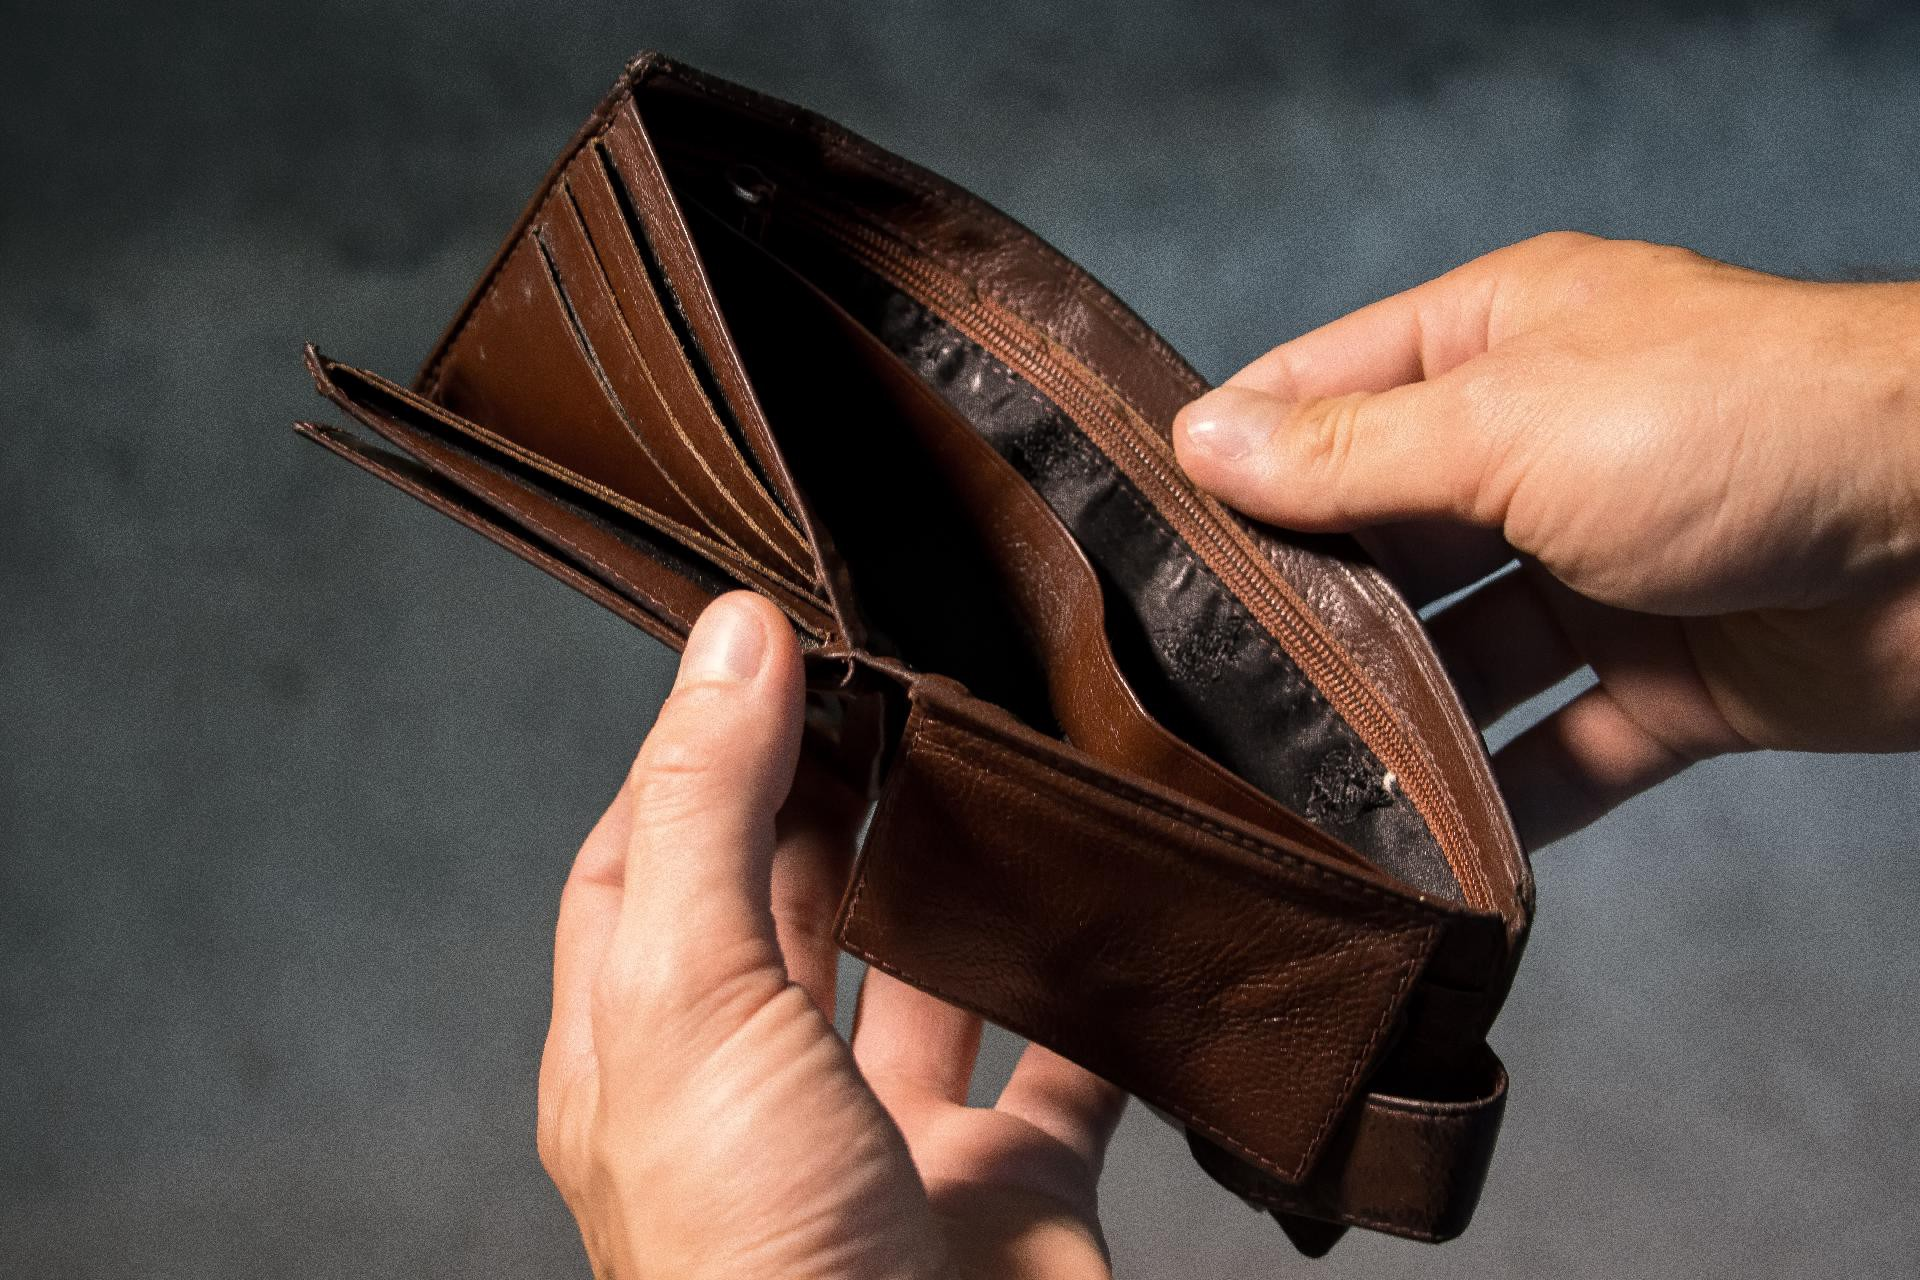 College stress from financial troubles